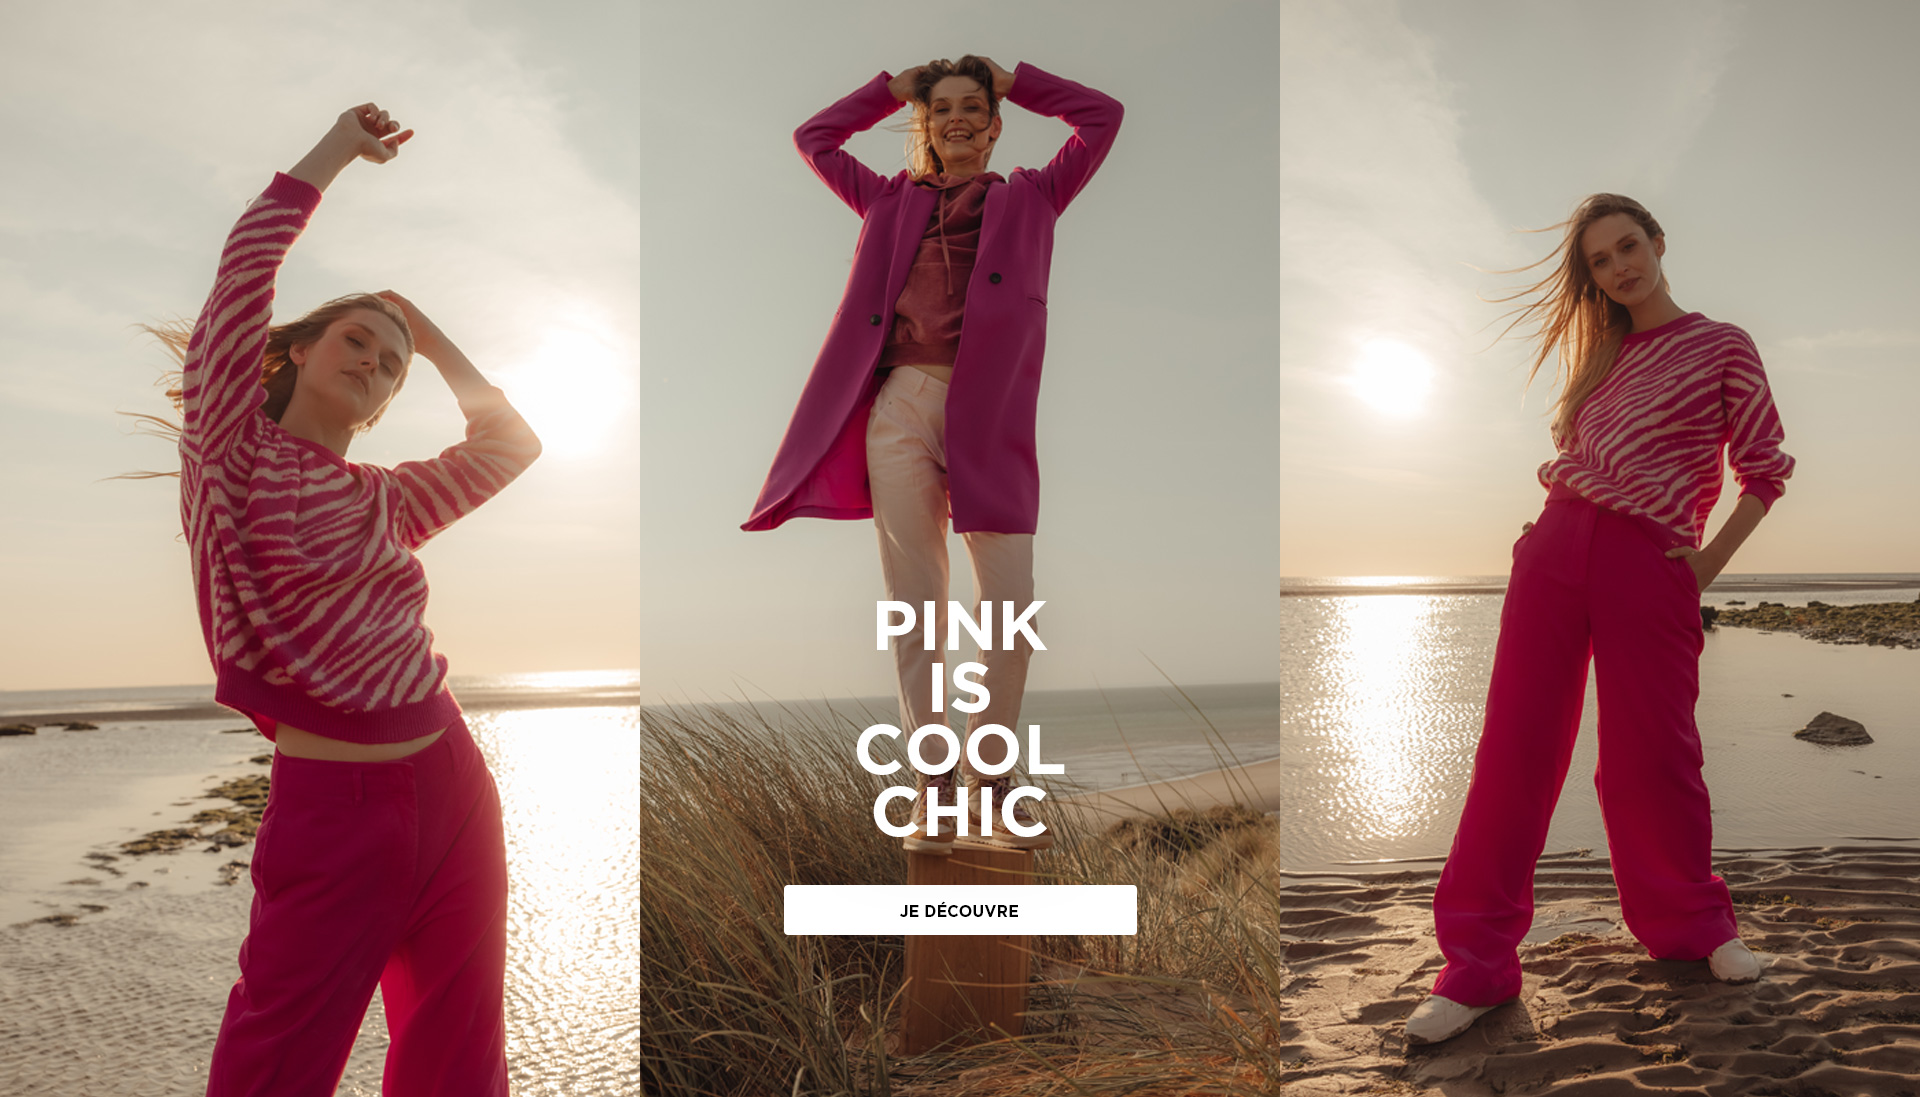 Pink is cool chic